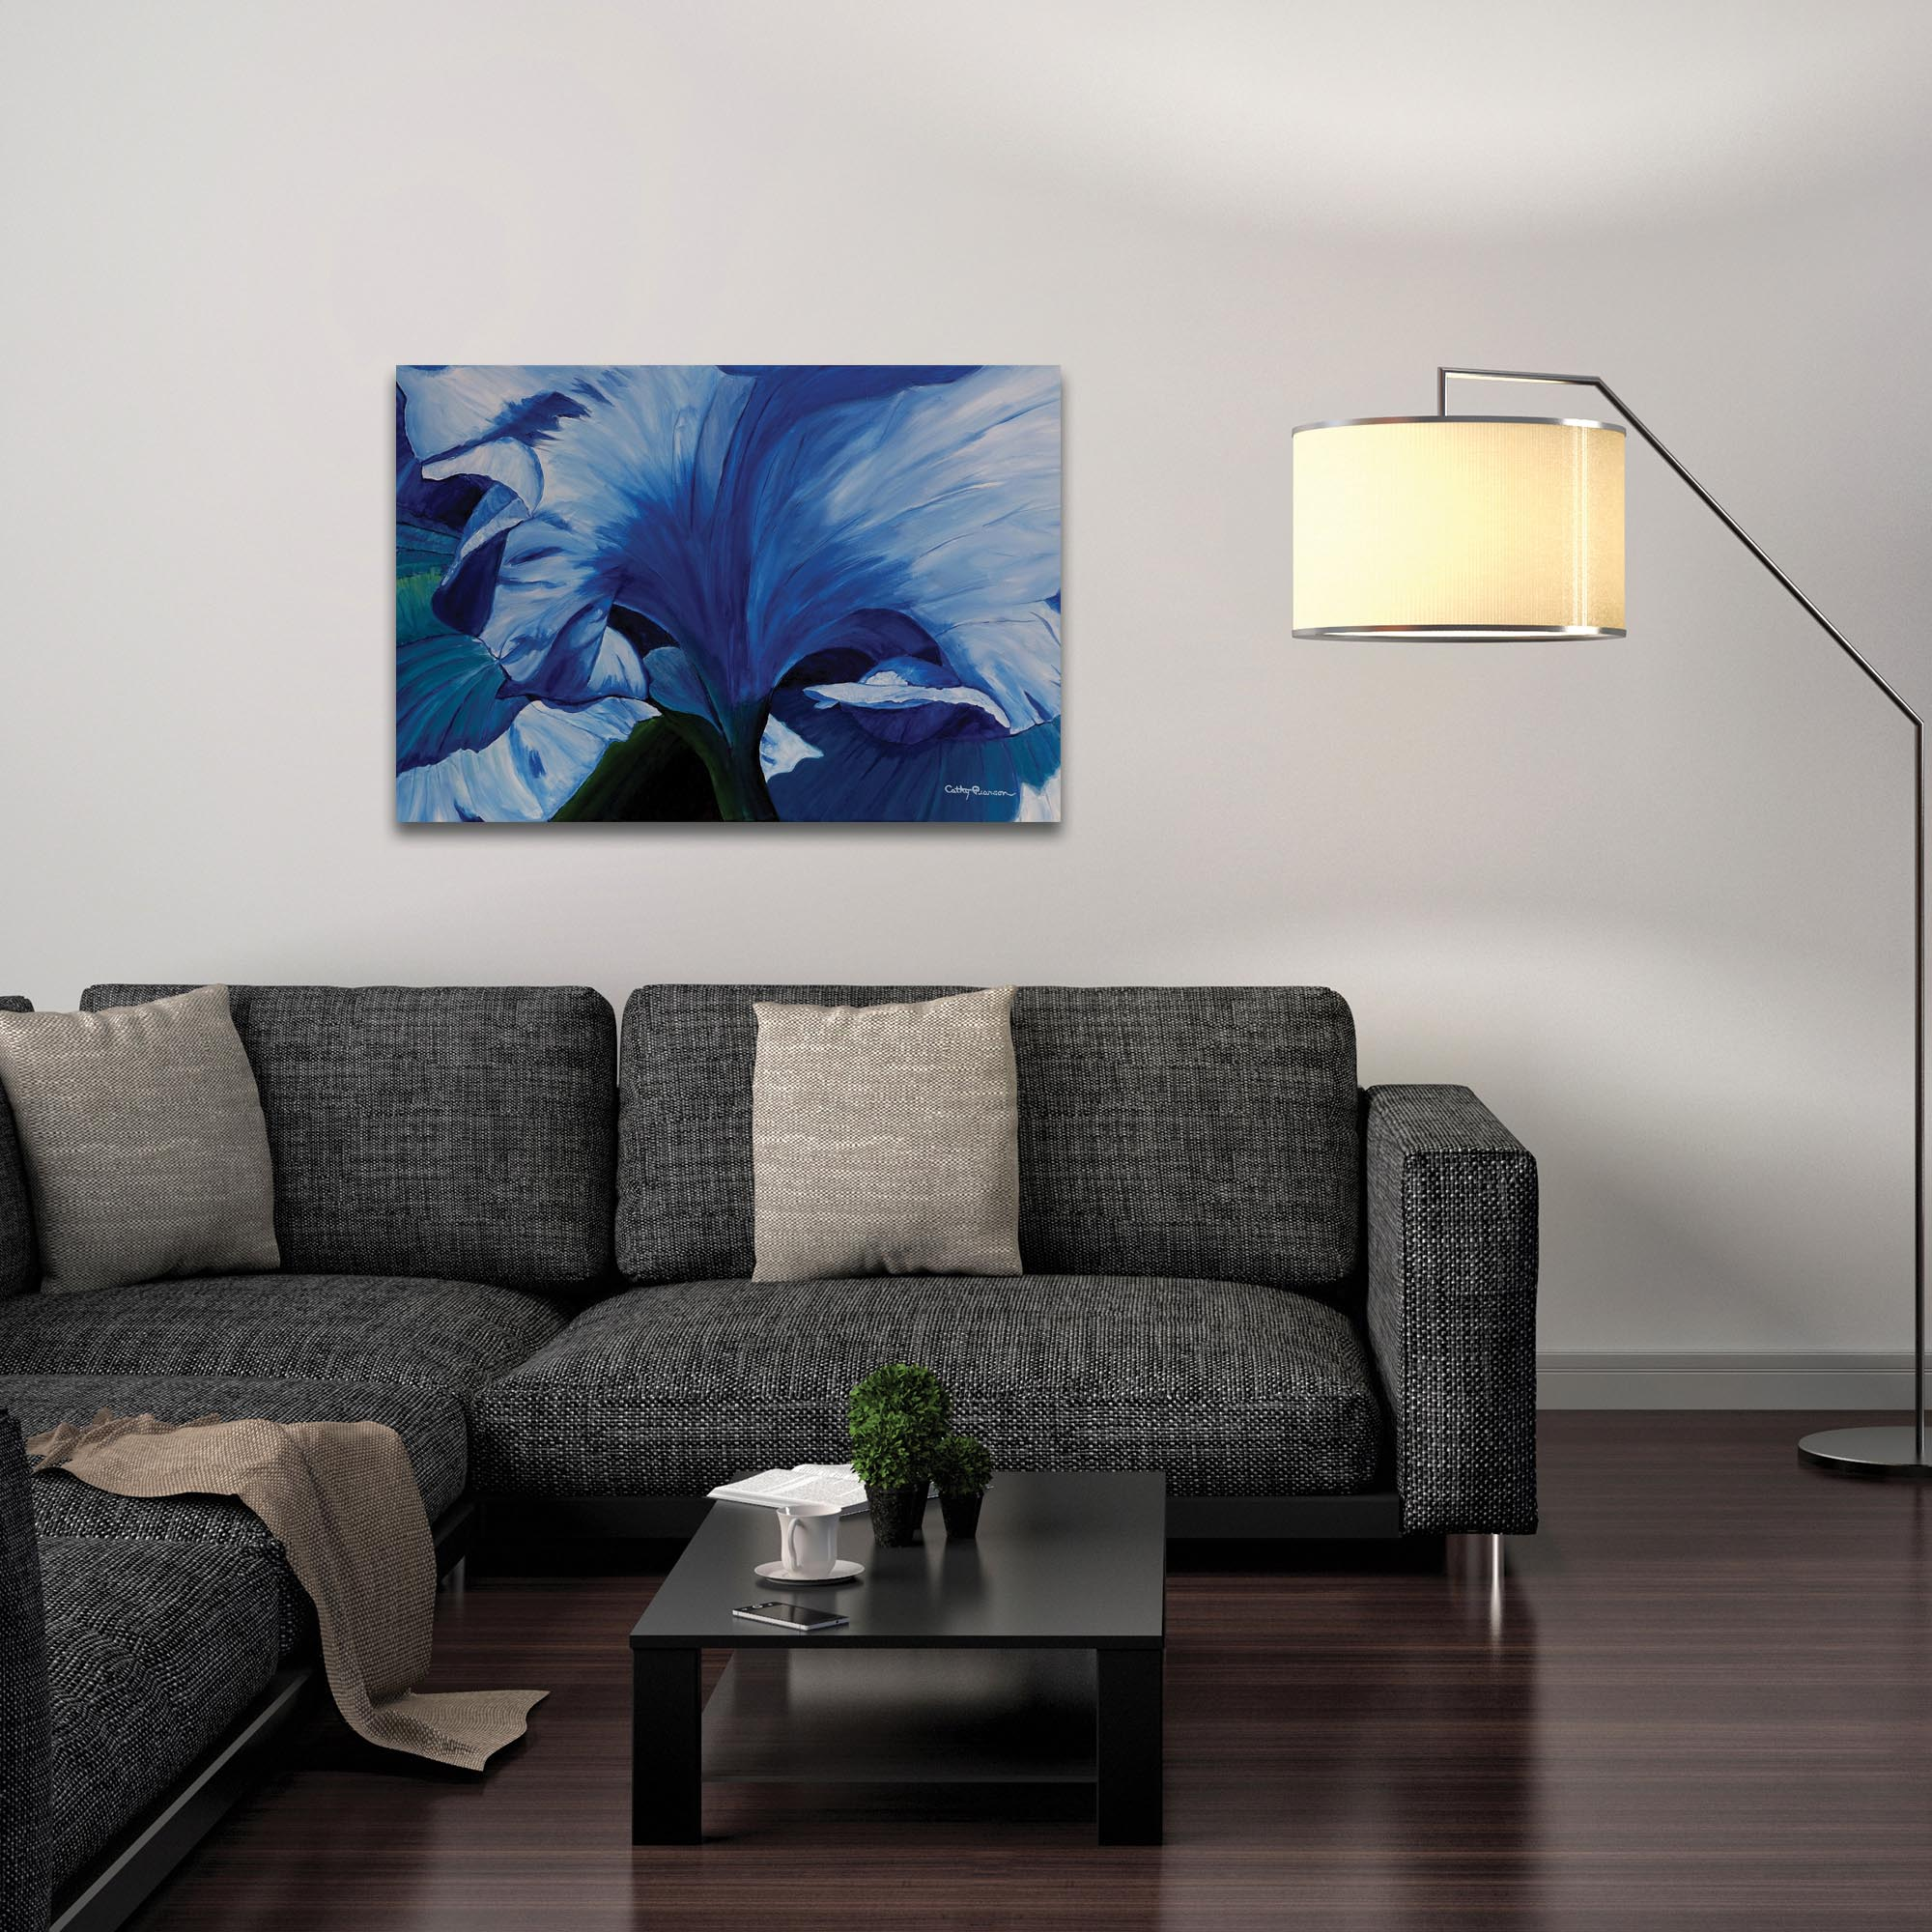 Traditional Wall Art 'Heart of a Blue Iris' - Floral Decor on Metal or Plexiglass - Lifestyle View